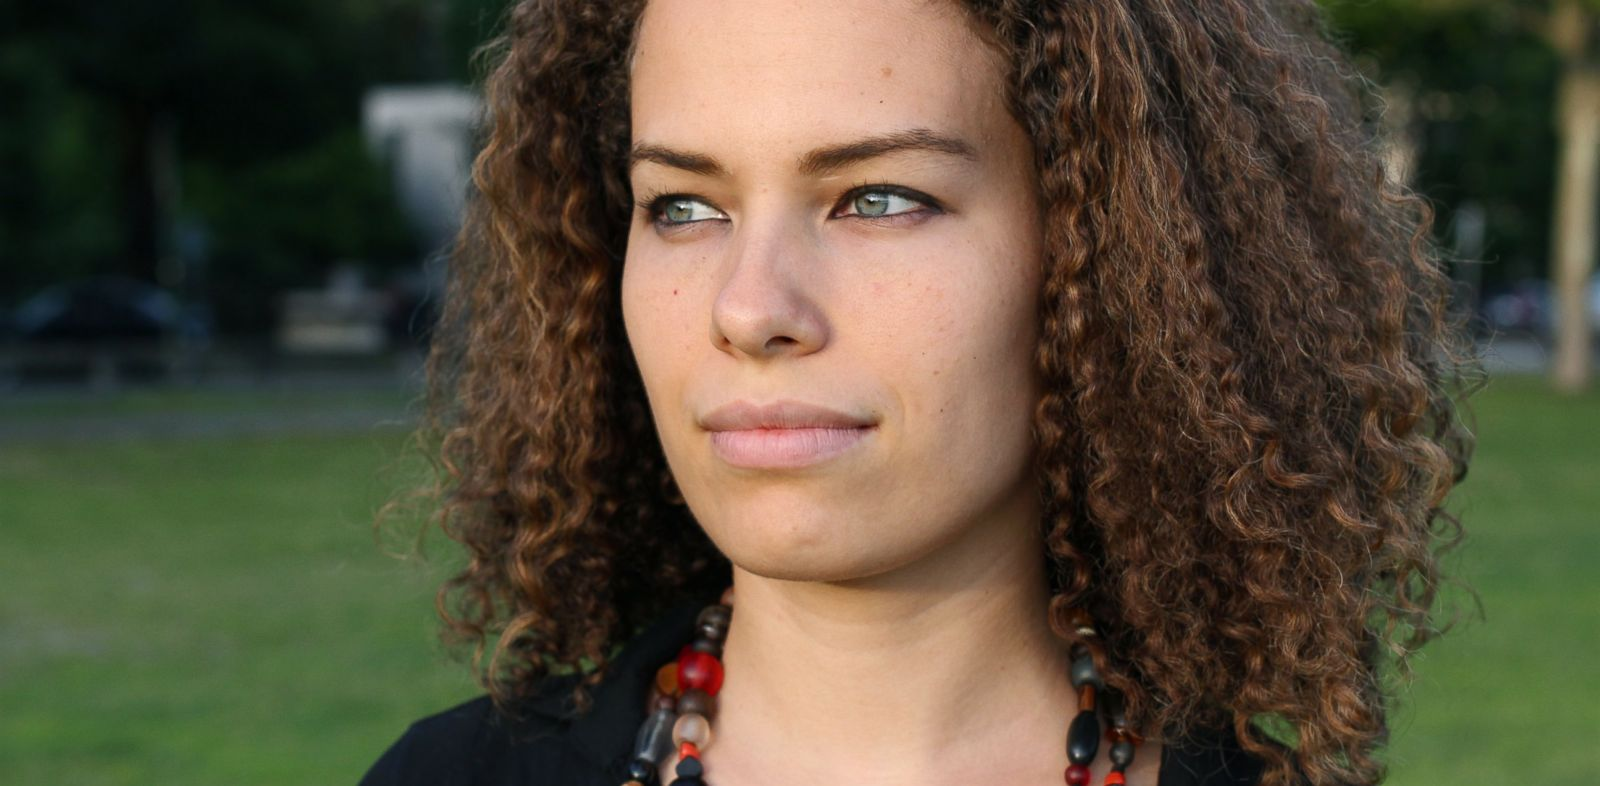 PHOTO: Jennifer Brea is making a film about patients struggling with myalgic encephalomyelitis, known more commonly as chronic fatigue syndrome.